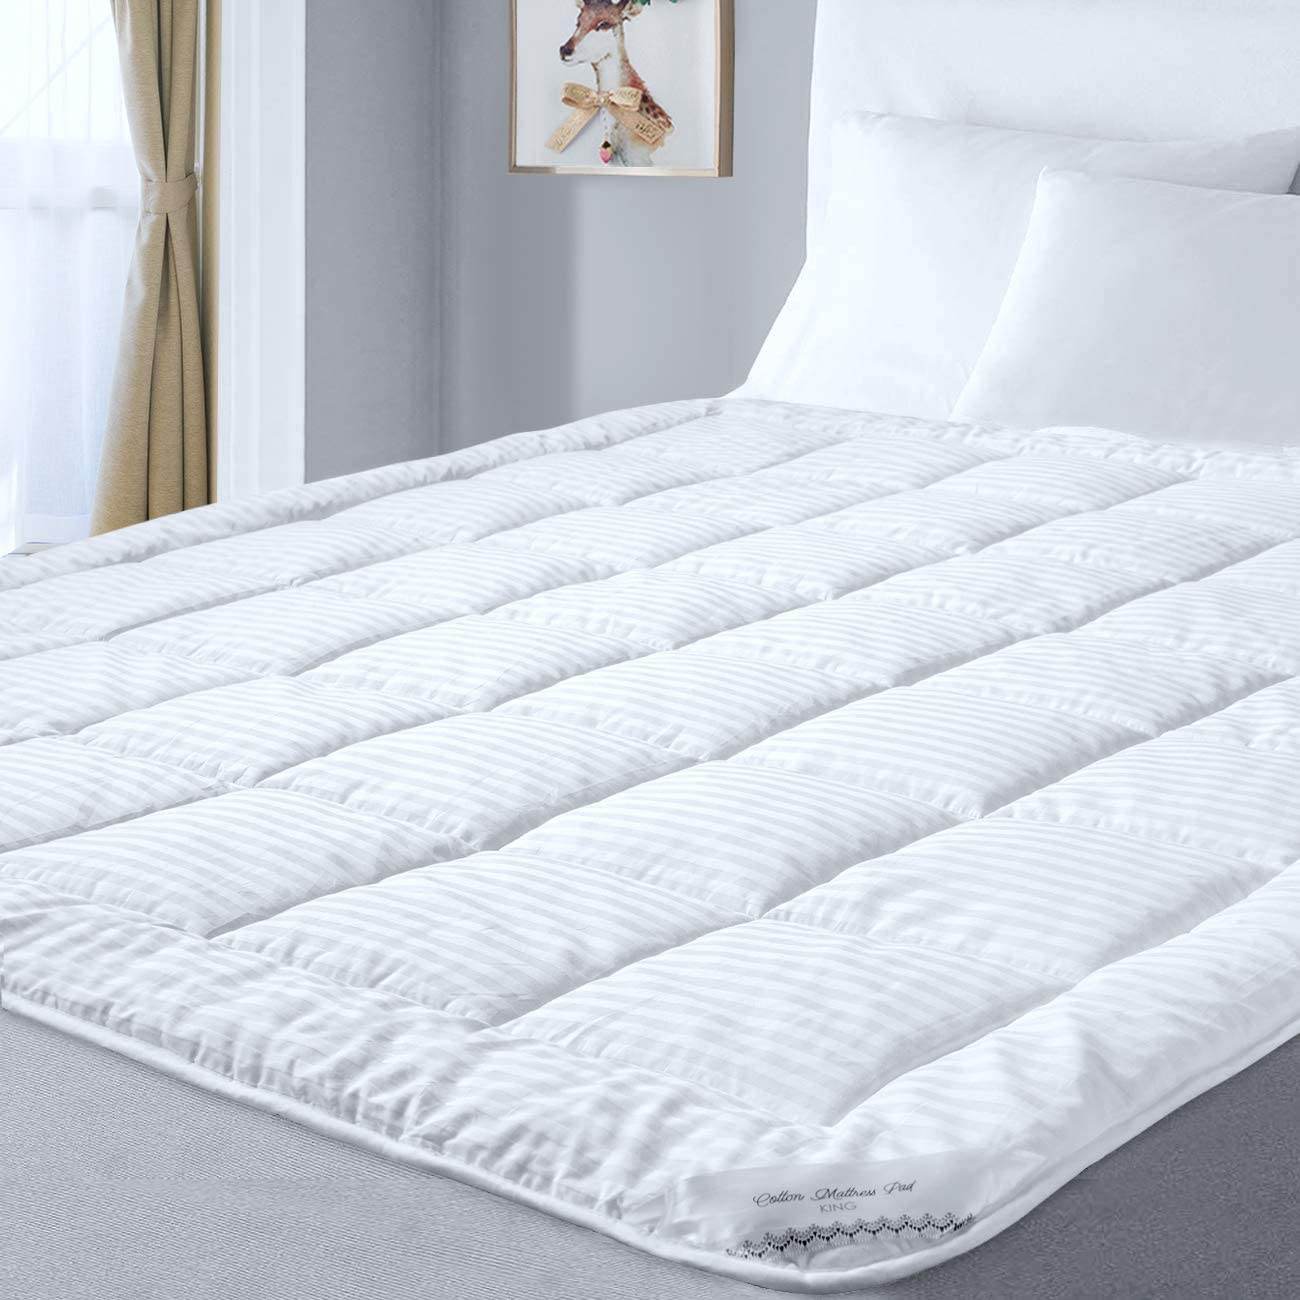 Mattress Pad for King Size Bed with 100% Ventilated Cotton Cover andDown Alternative Microfiber Filling with Secure Anchor Band Design Adaptsto Mattress Depthsfromfor 6-22'', Machine Washable